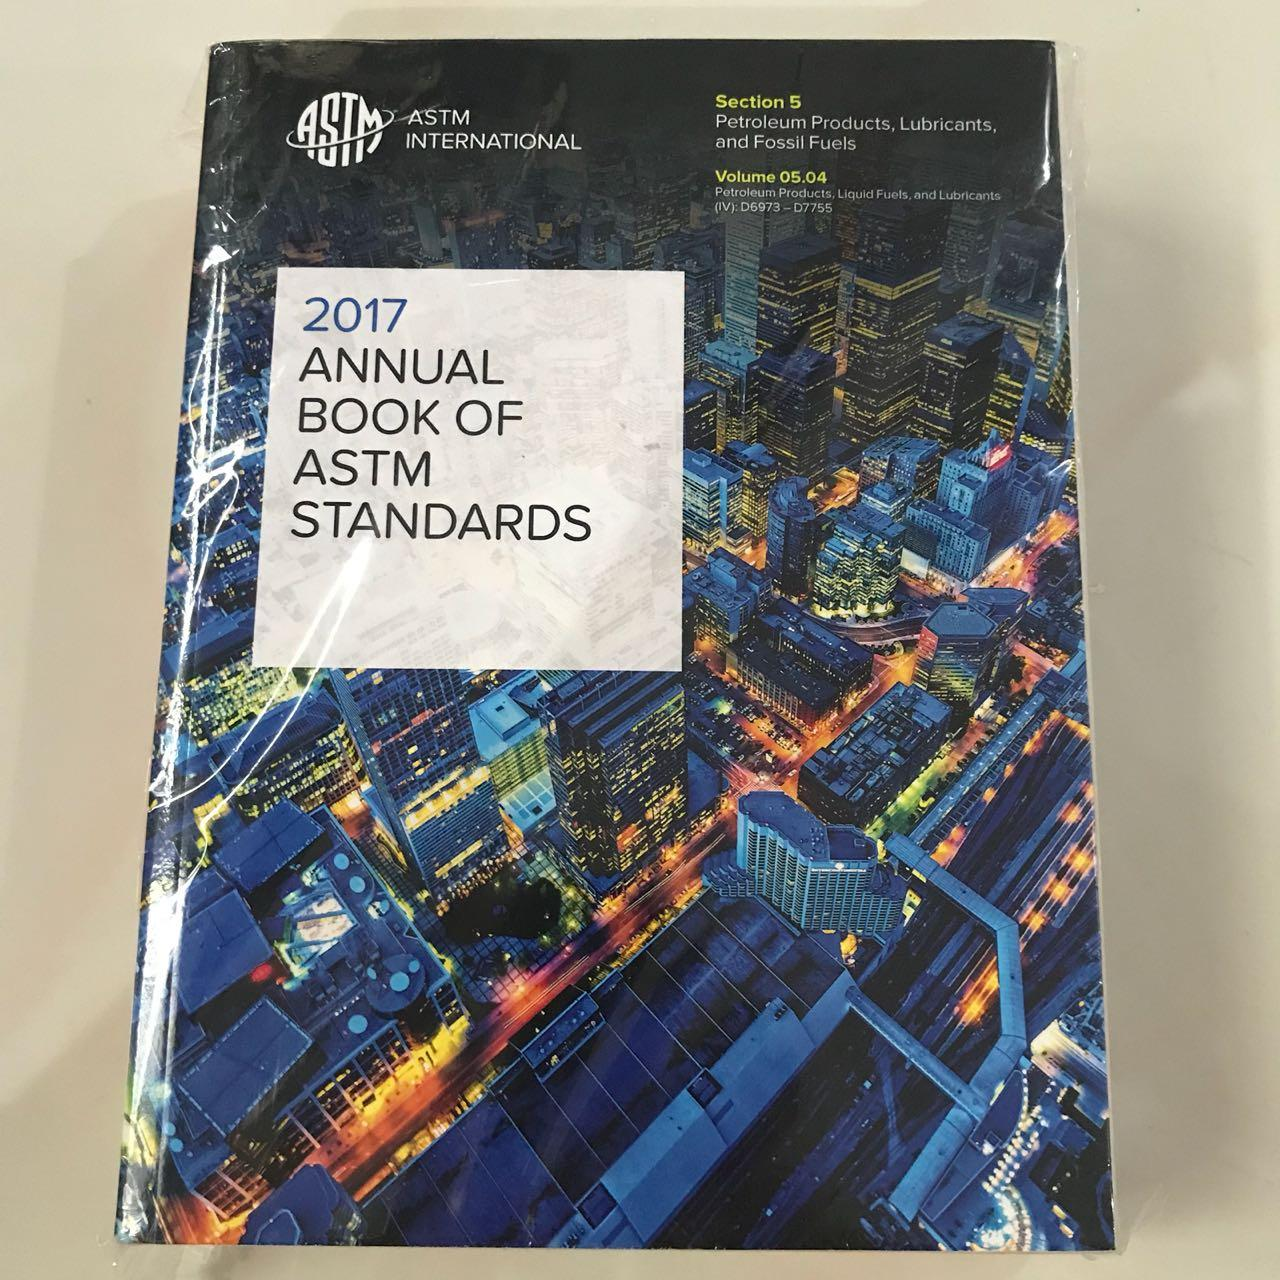 ASTM Annual Book Of Standards 2017 Volume 05.04 Petroleum Products, Lubricants, Fossil Fuels